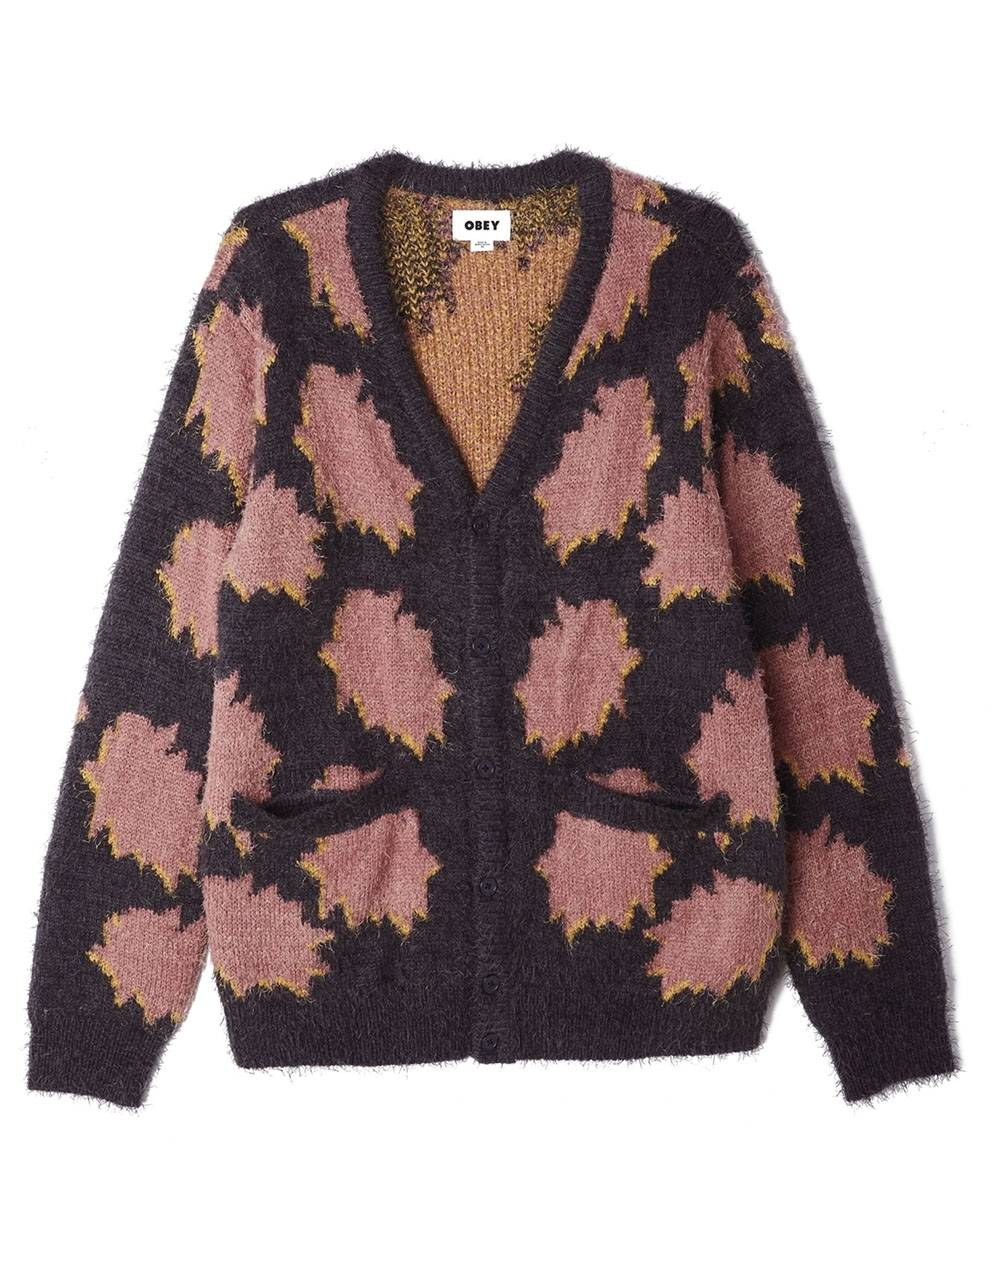 Obey Crackle cardigan - navy multi obey Knitwear 90,16 €